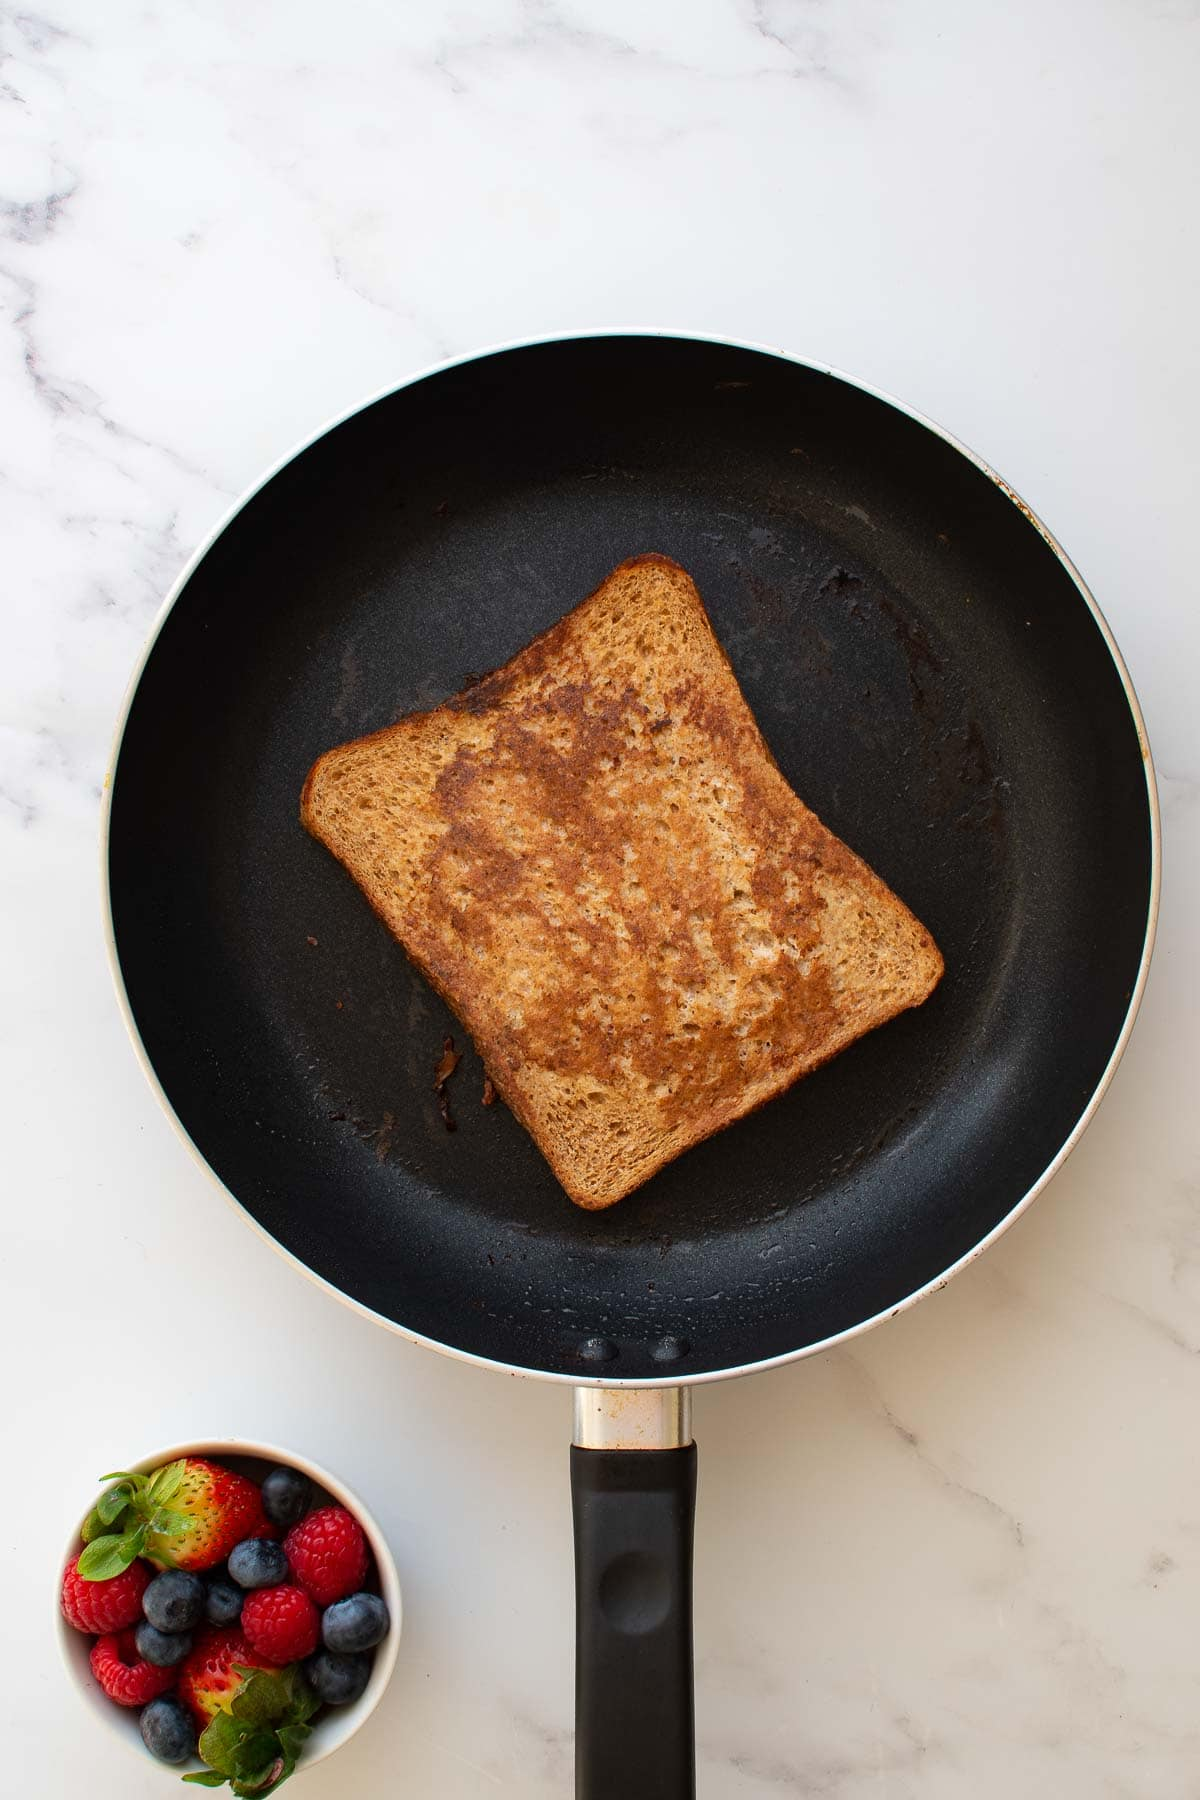 French toast being cooked in a skillet.